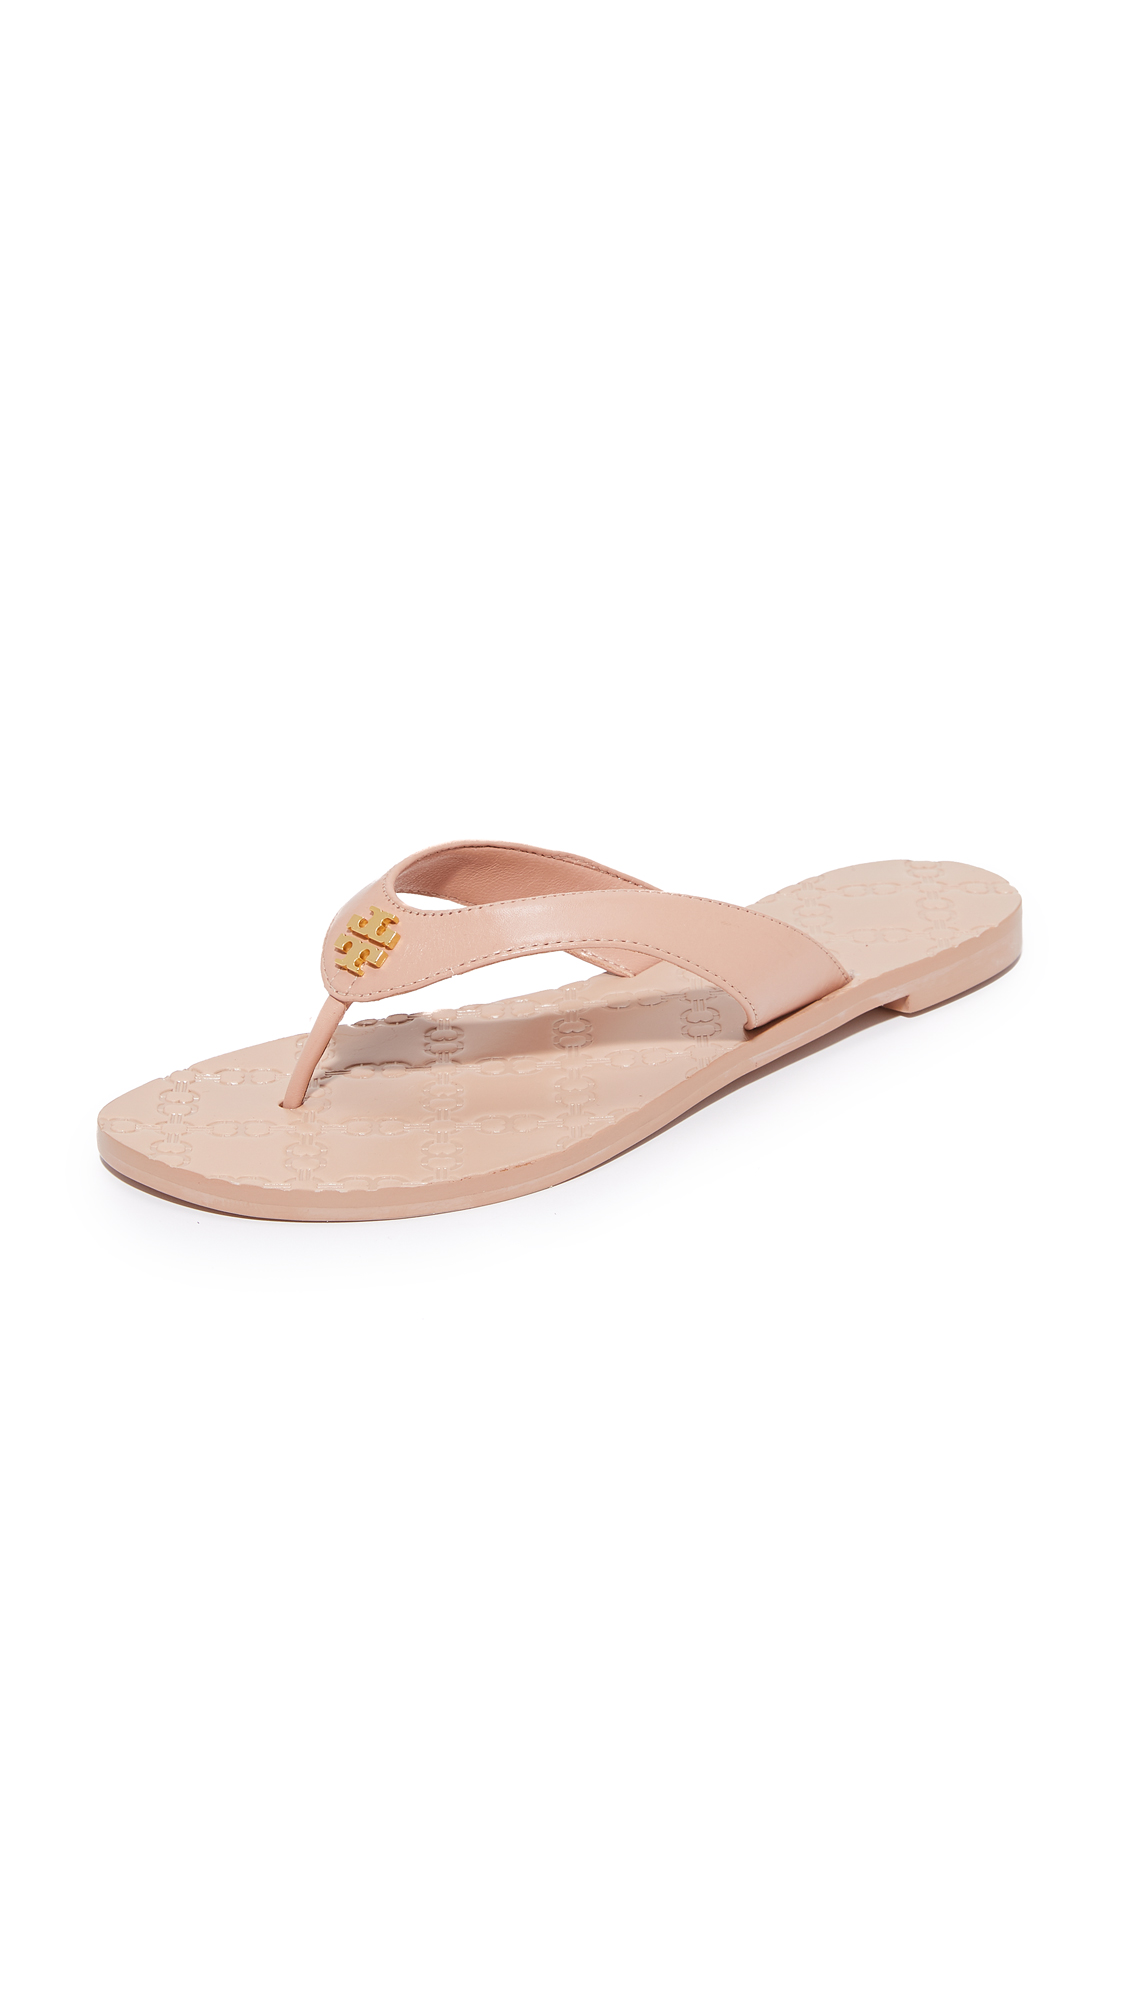 Tory Burch Monroe Thong Sandals - Light Makeup